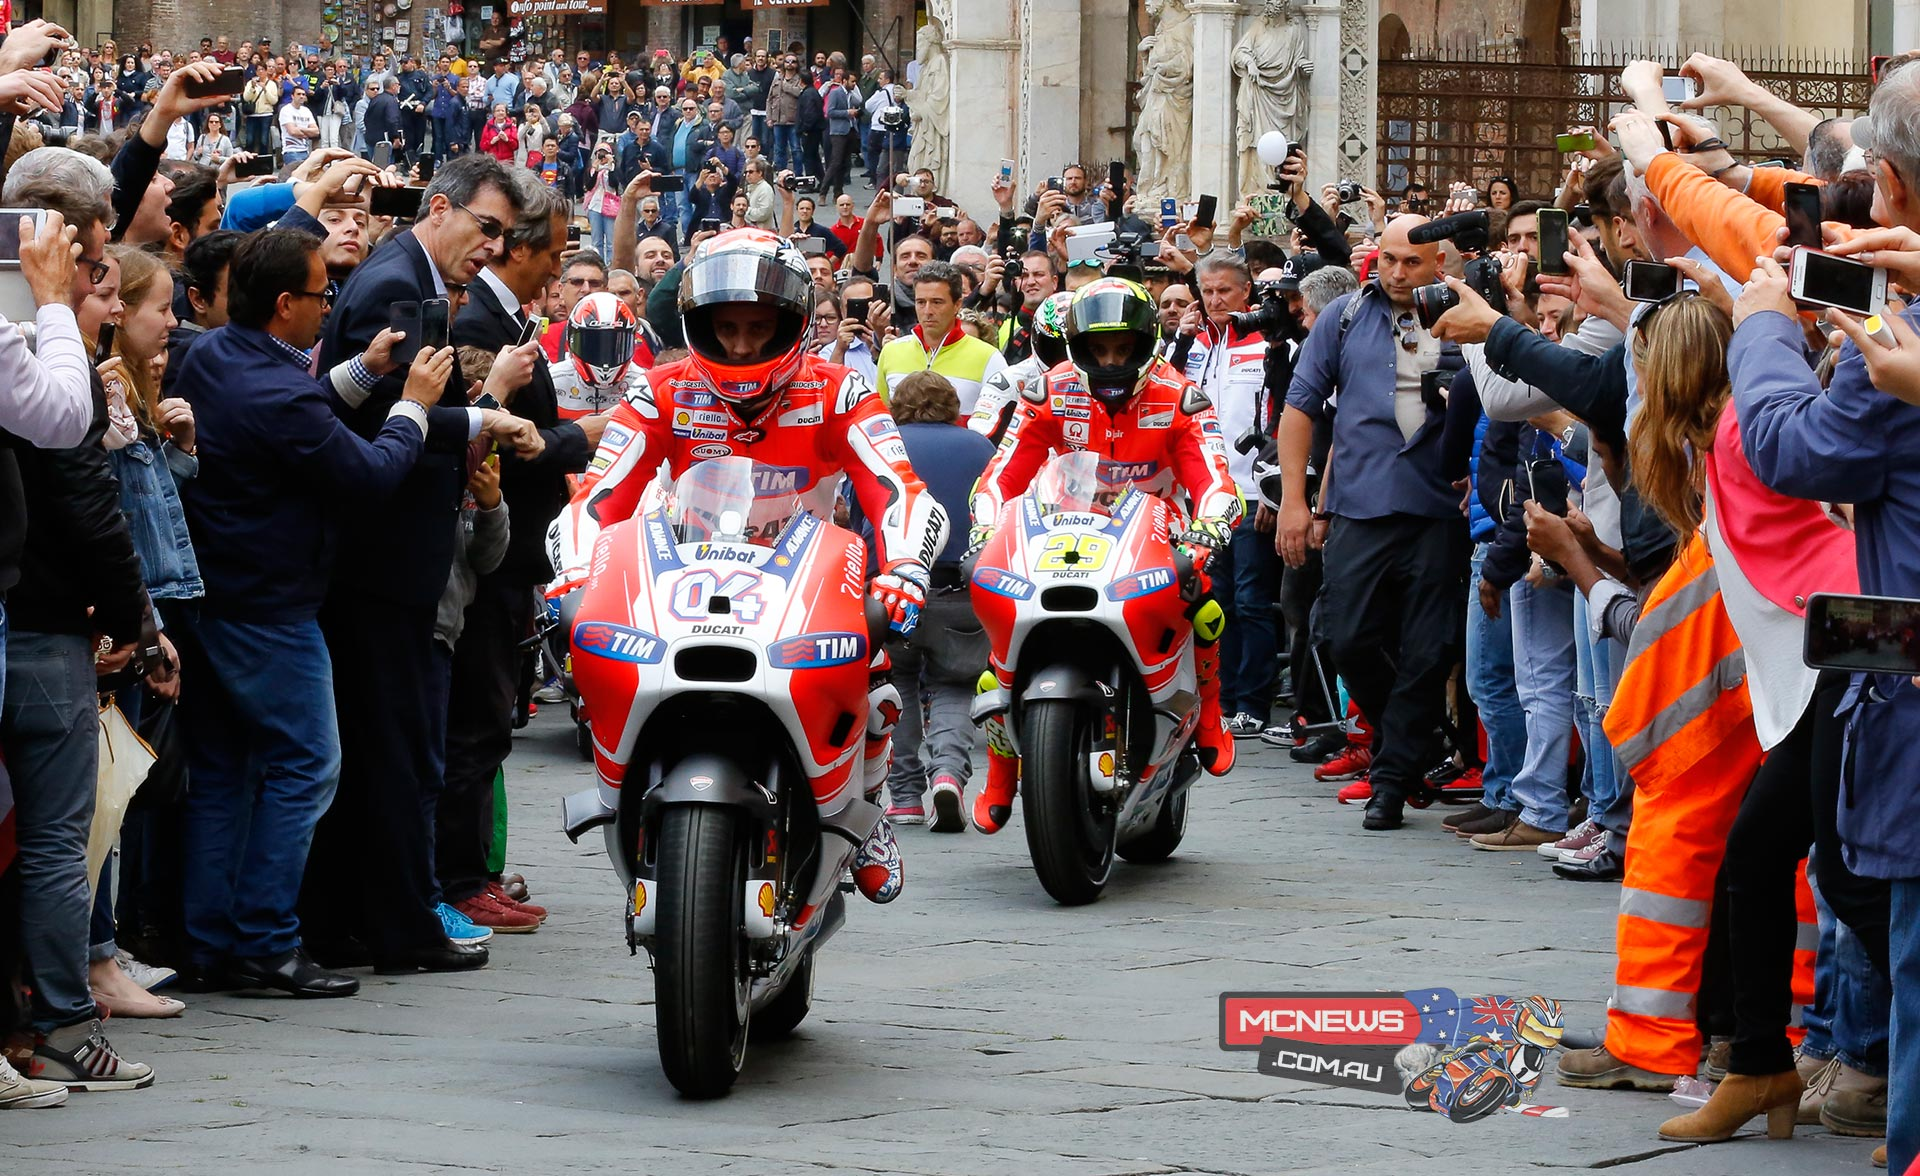 The Ducatis ride among the Siena crowd.